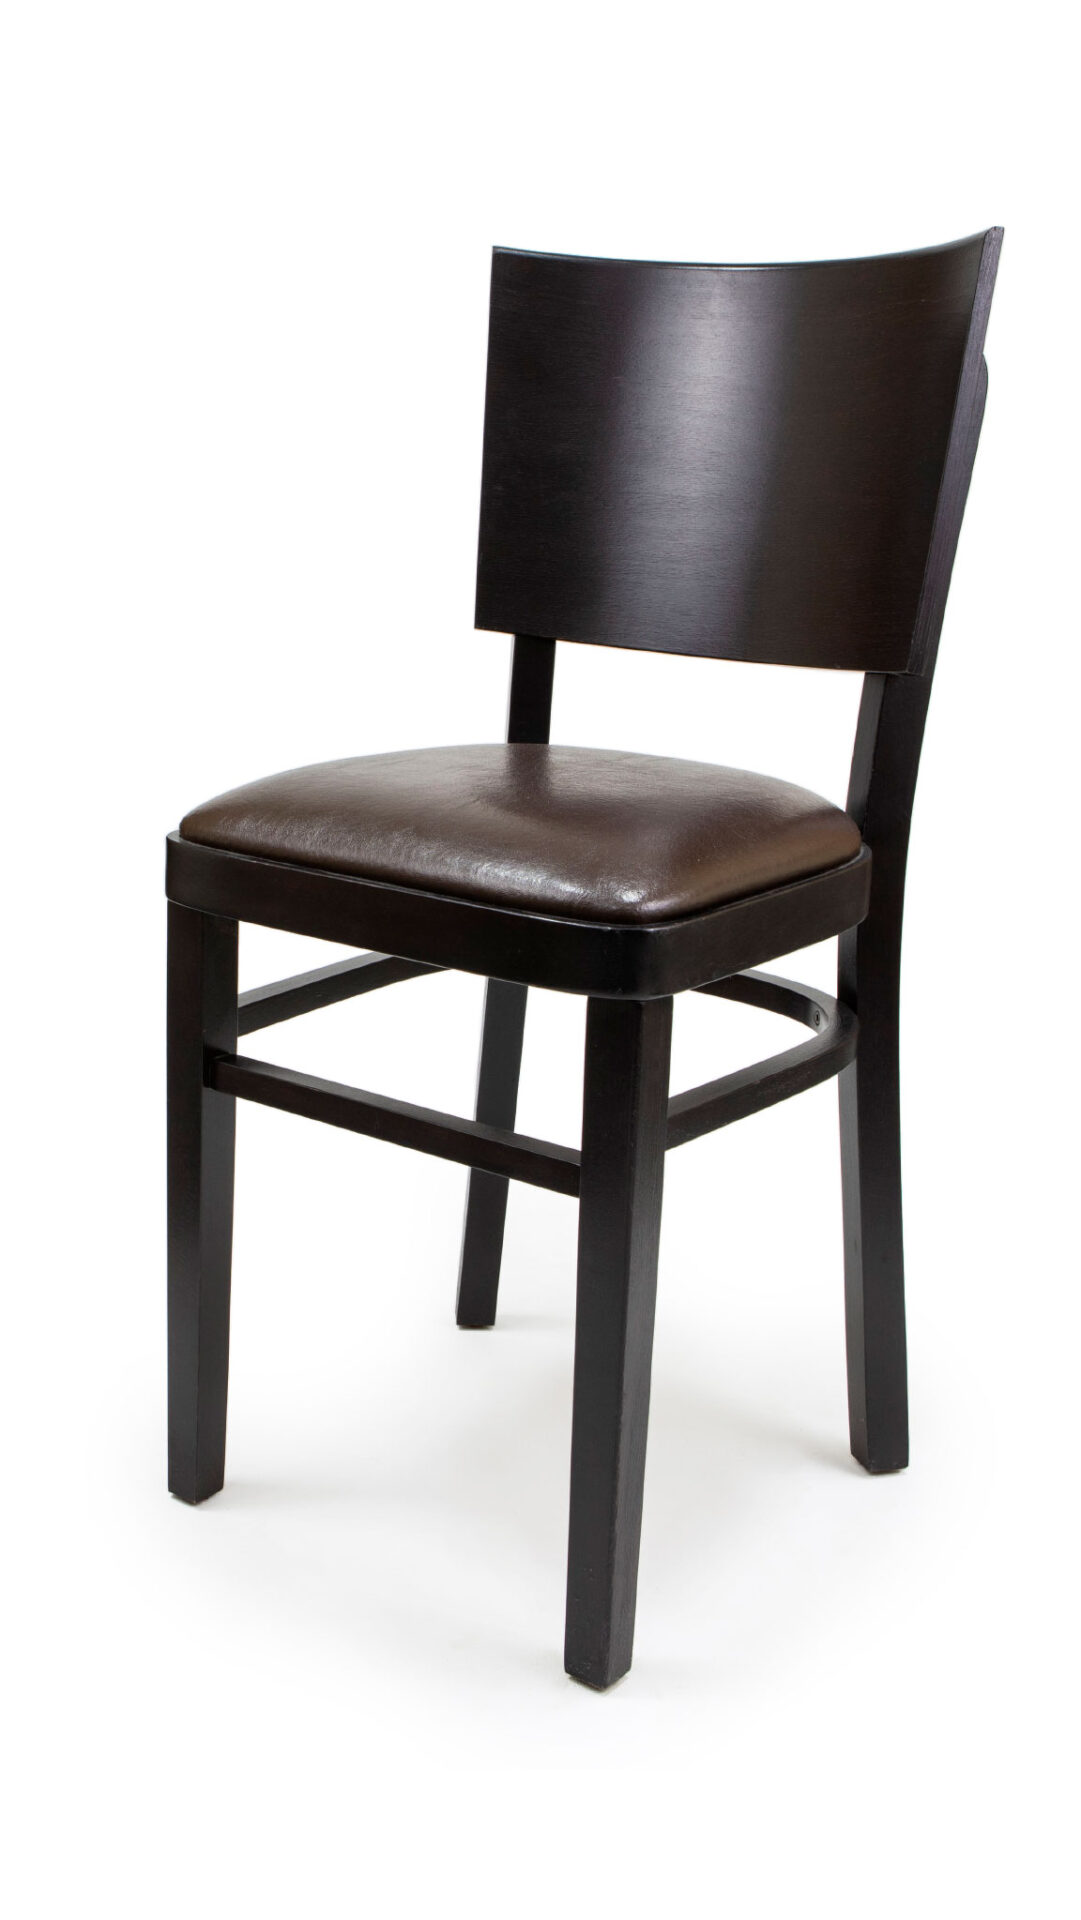 Solid Wood Chair made of Beech – 1328S